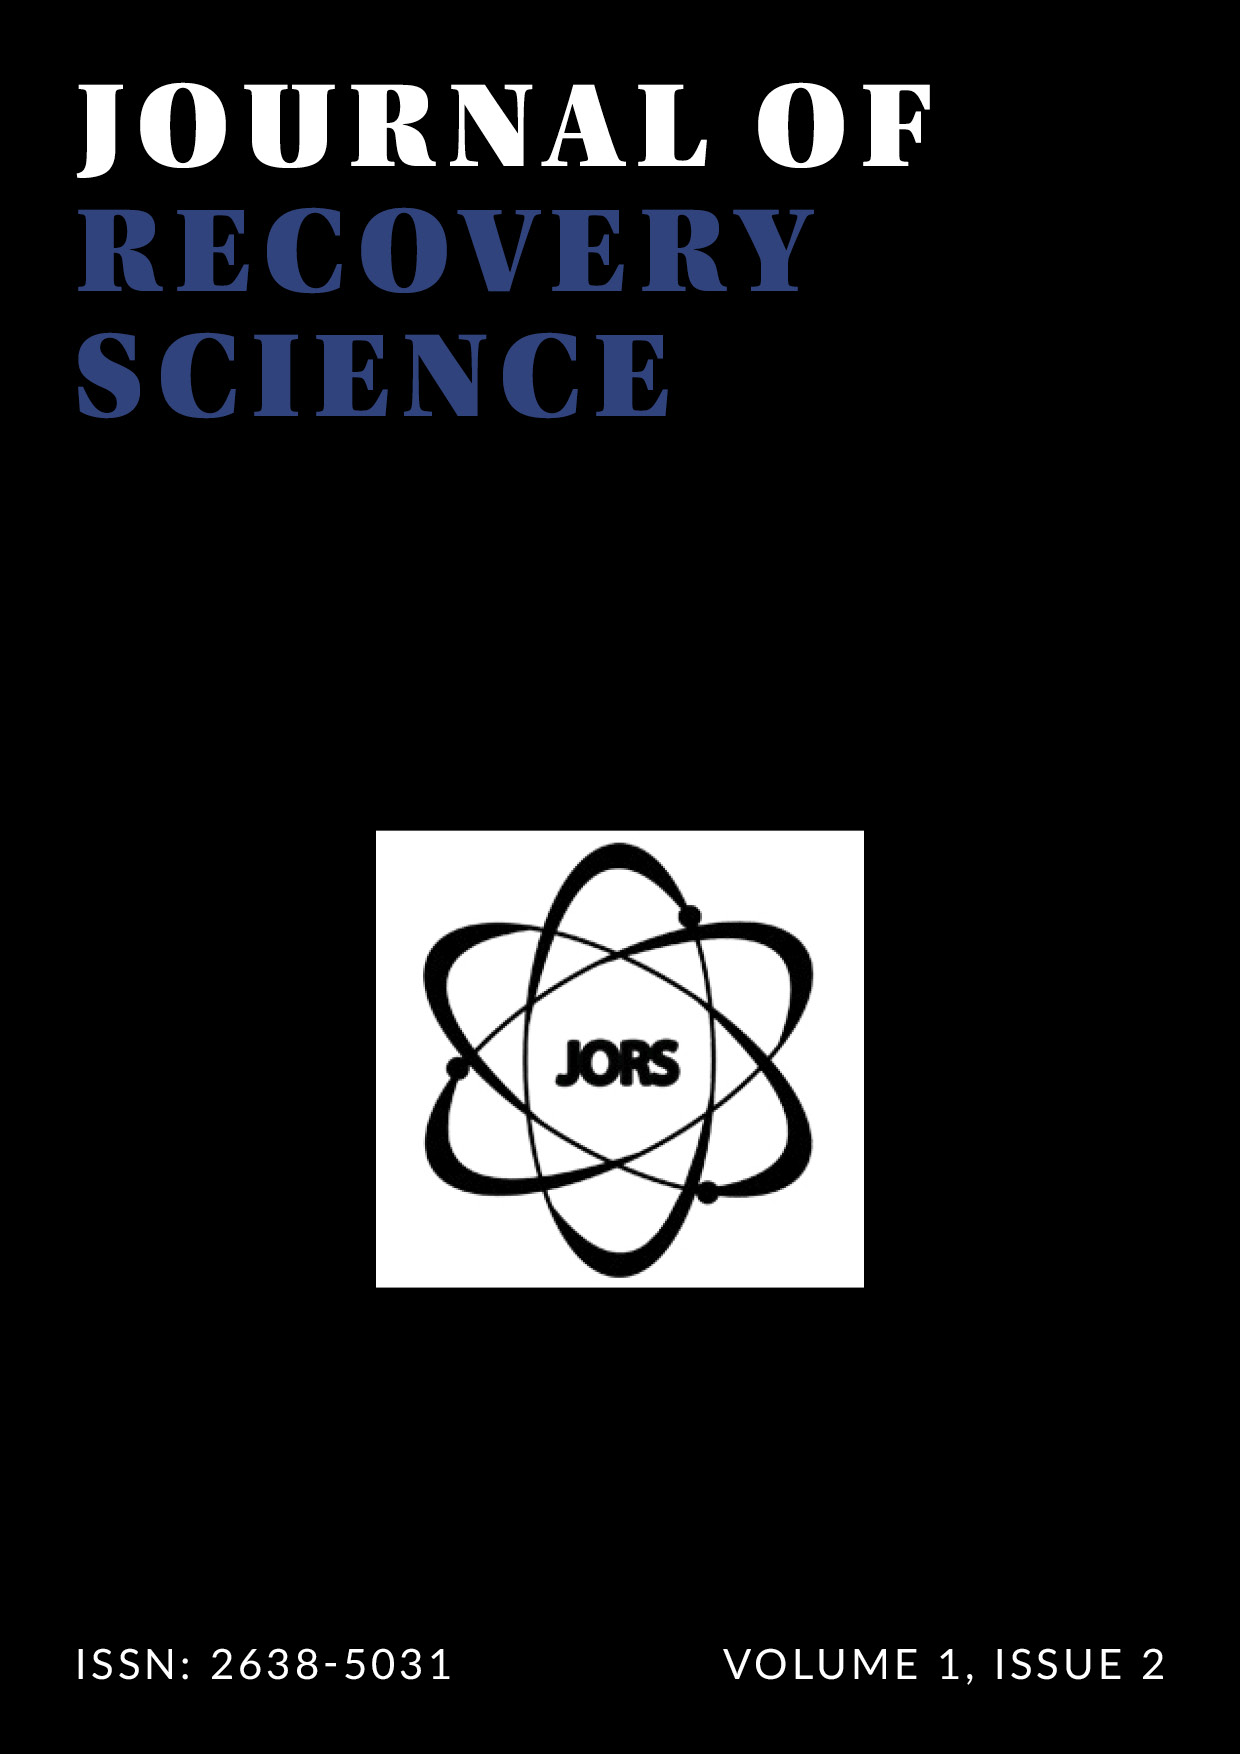 JORS Volume 1 Issue 2 ARHE Conference Proceedings